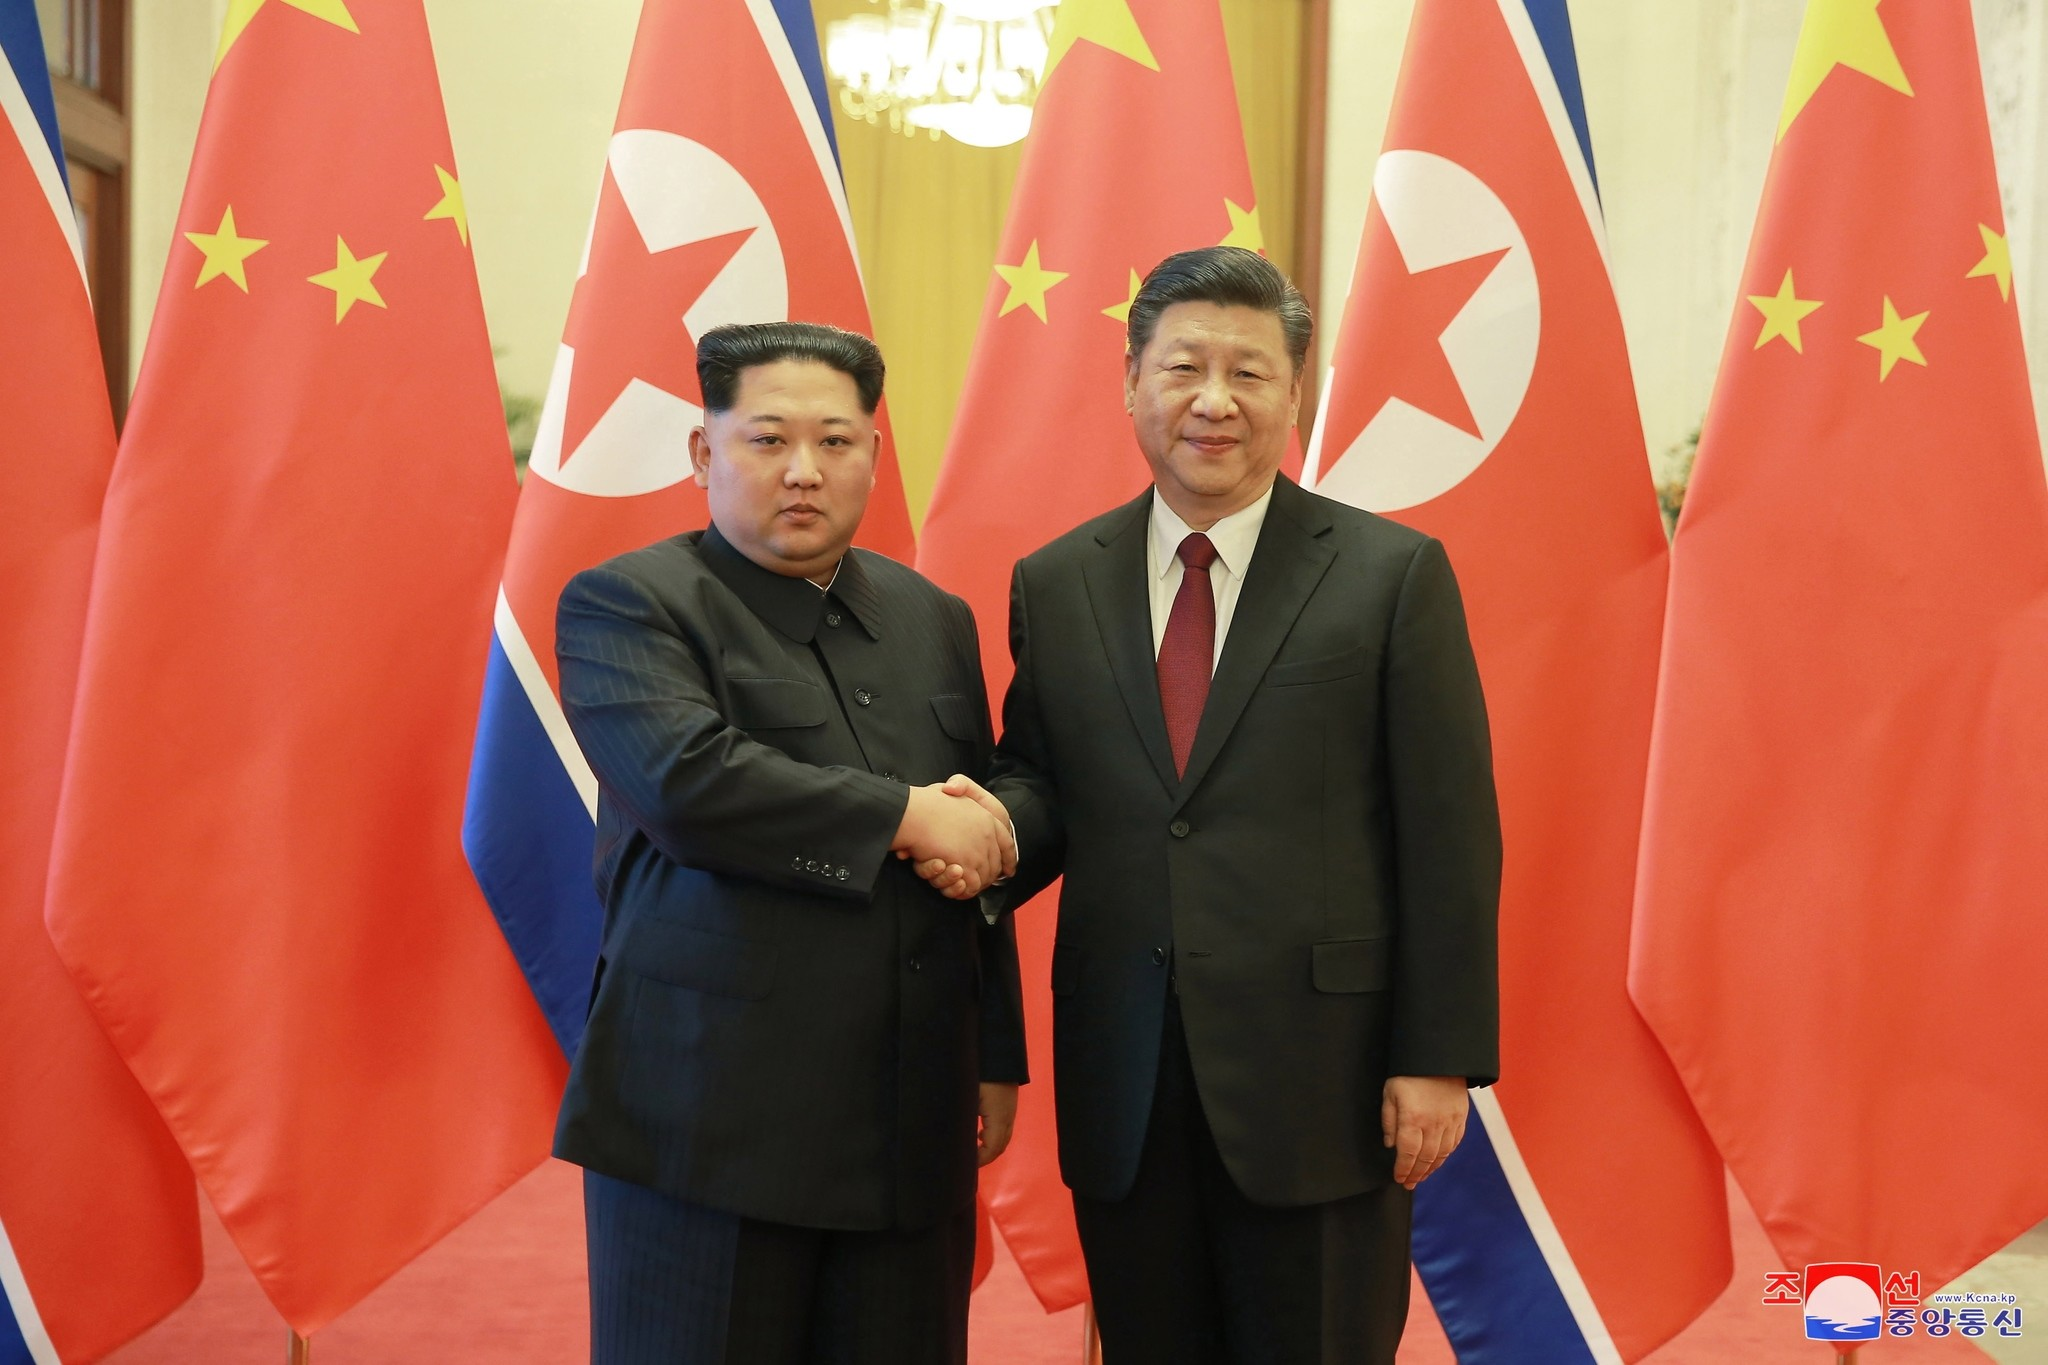 An undated photo released on 28 March 2018 by the official North Korean Central News Agency (KCNA), shows North Korean leader Kim Jong-un (L) shaking hands with Chinese President Xi Jinping (R) during a visit to Beijing, China.